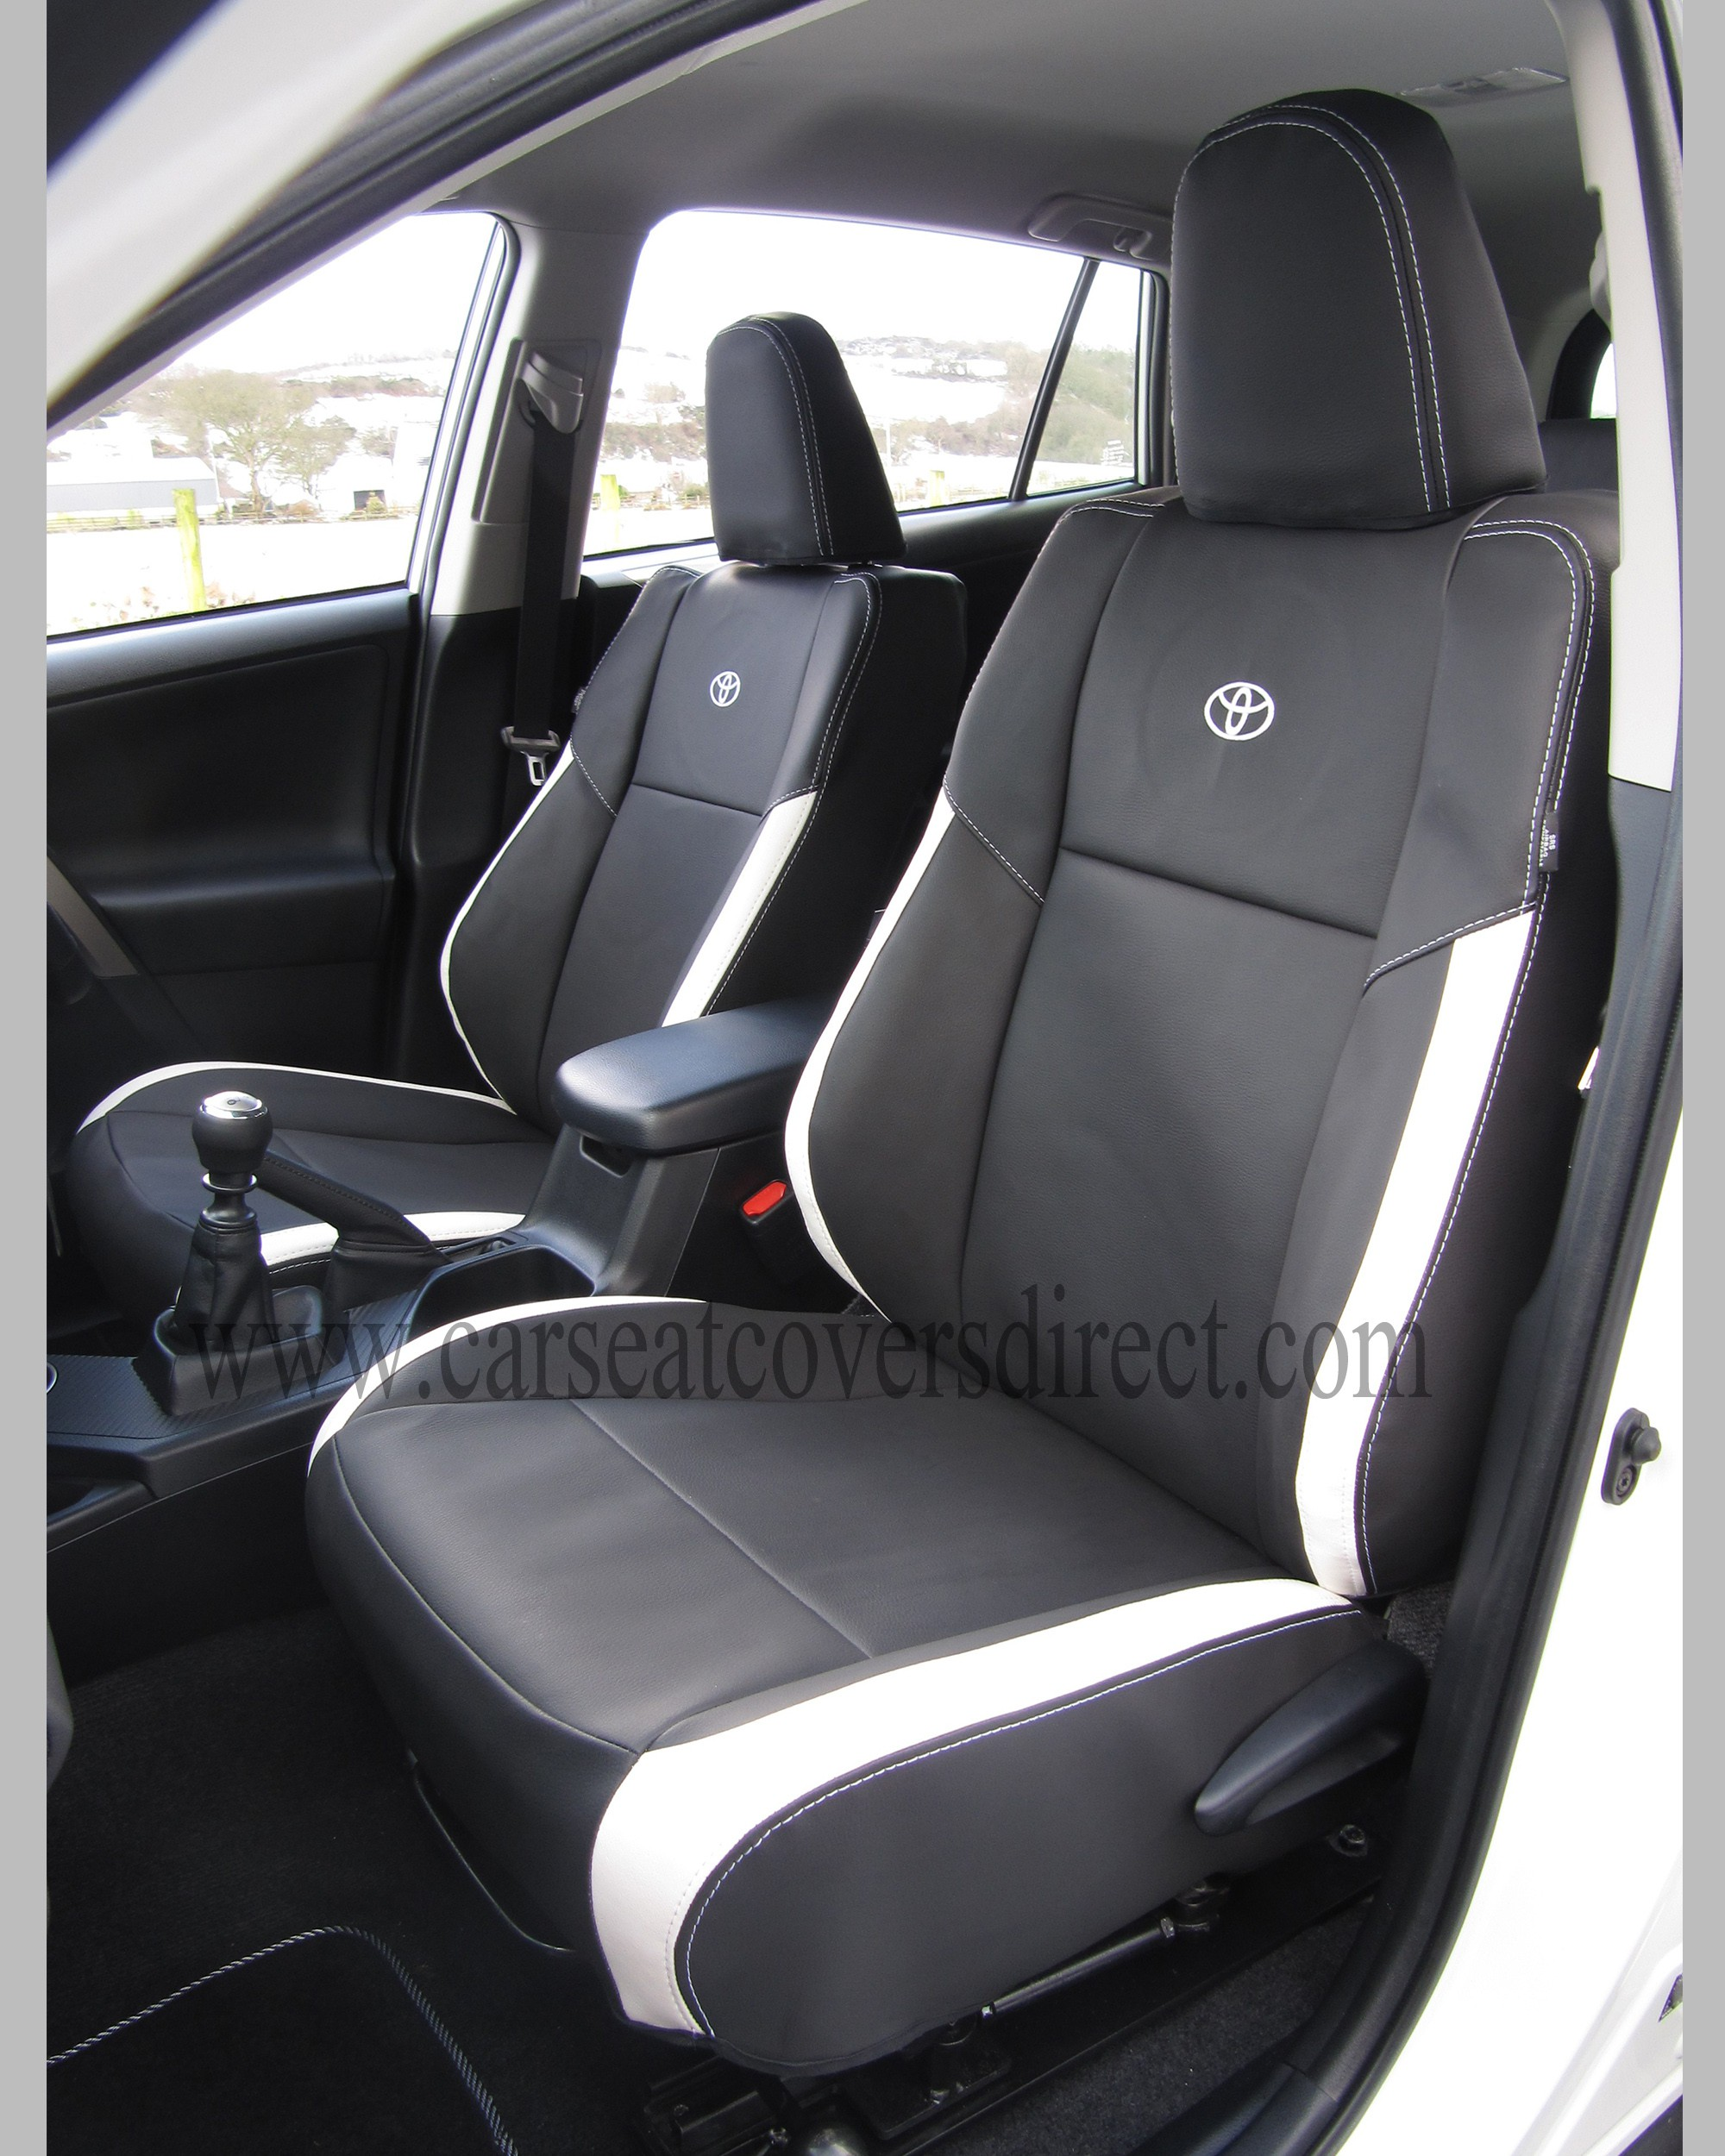 toyota rav4 seat covers black white leatherette 4th generations car seat covers direct. Black Bedroom Furniture Sets. Home Design Ideas